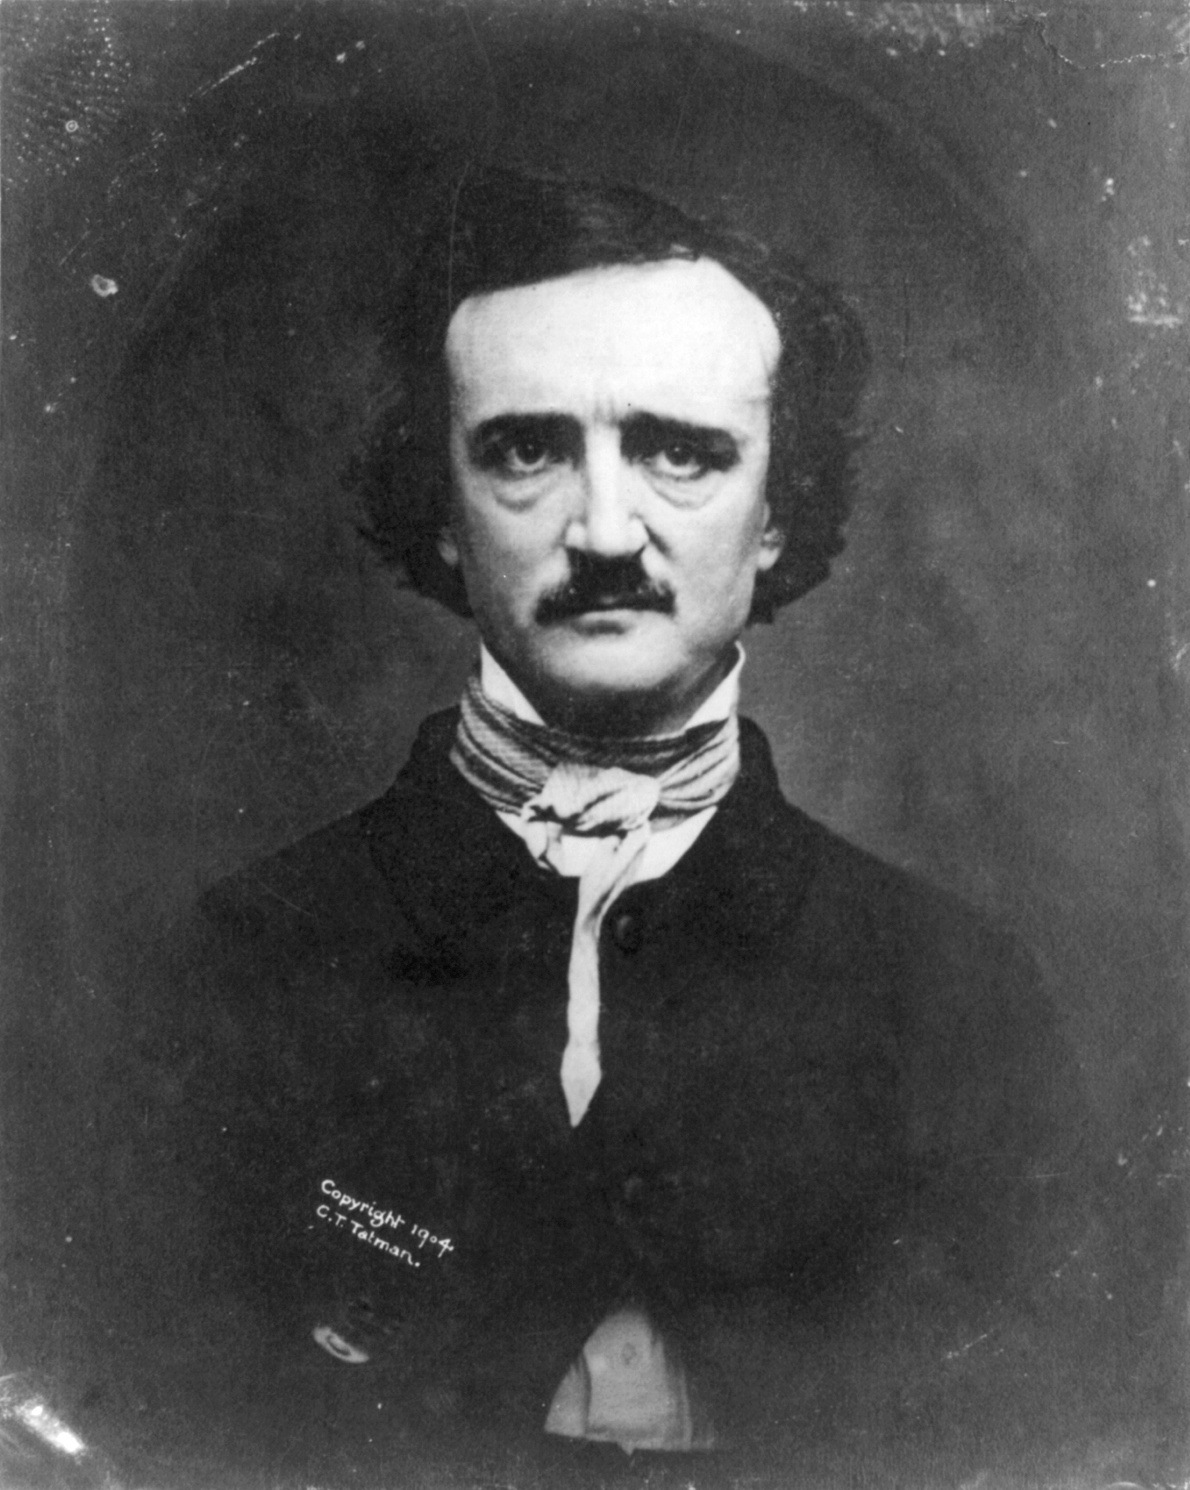 the raven edgar allan poe essay the raven by edgar allan poe thug jonathan ball misreading edgar allan poe s the raven lemon hound